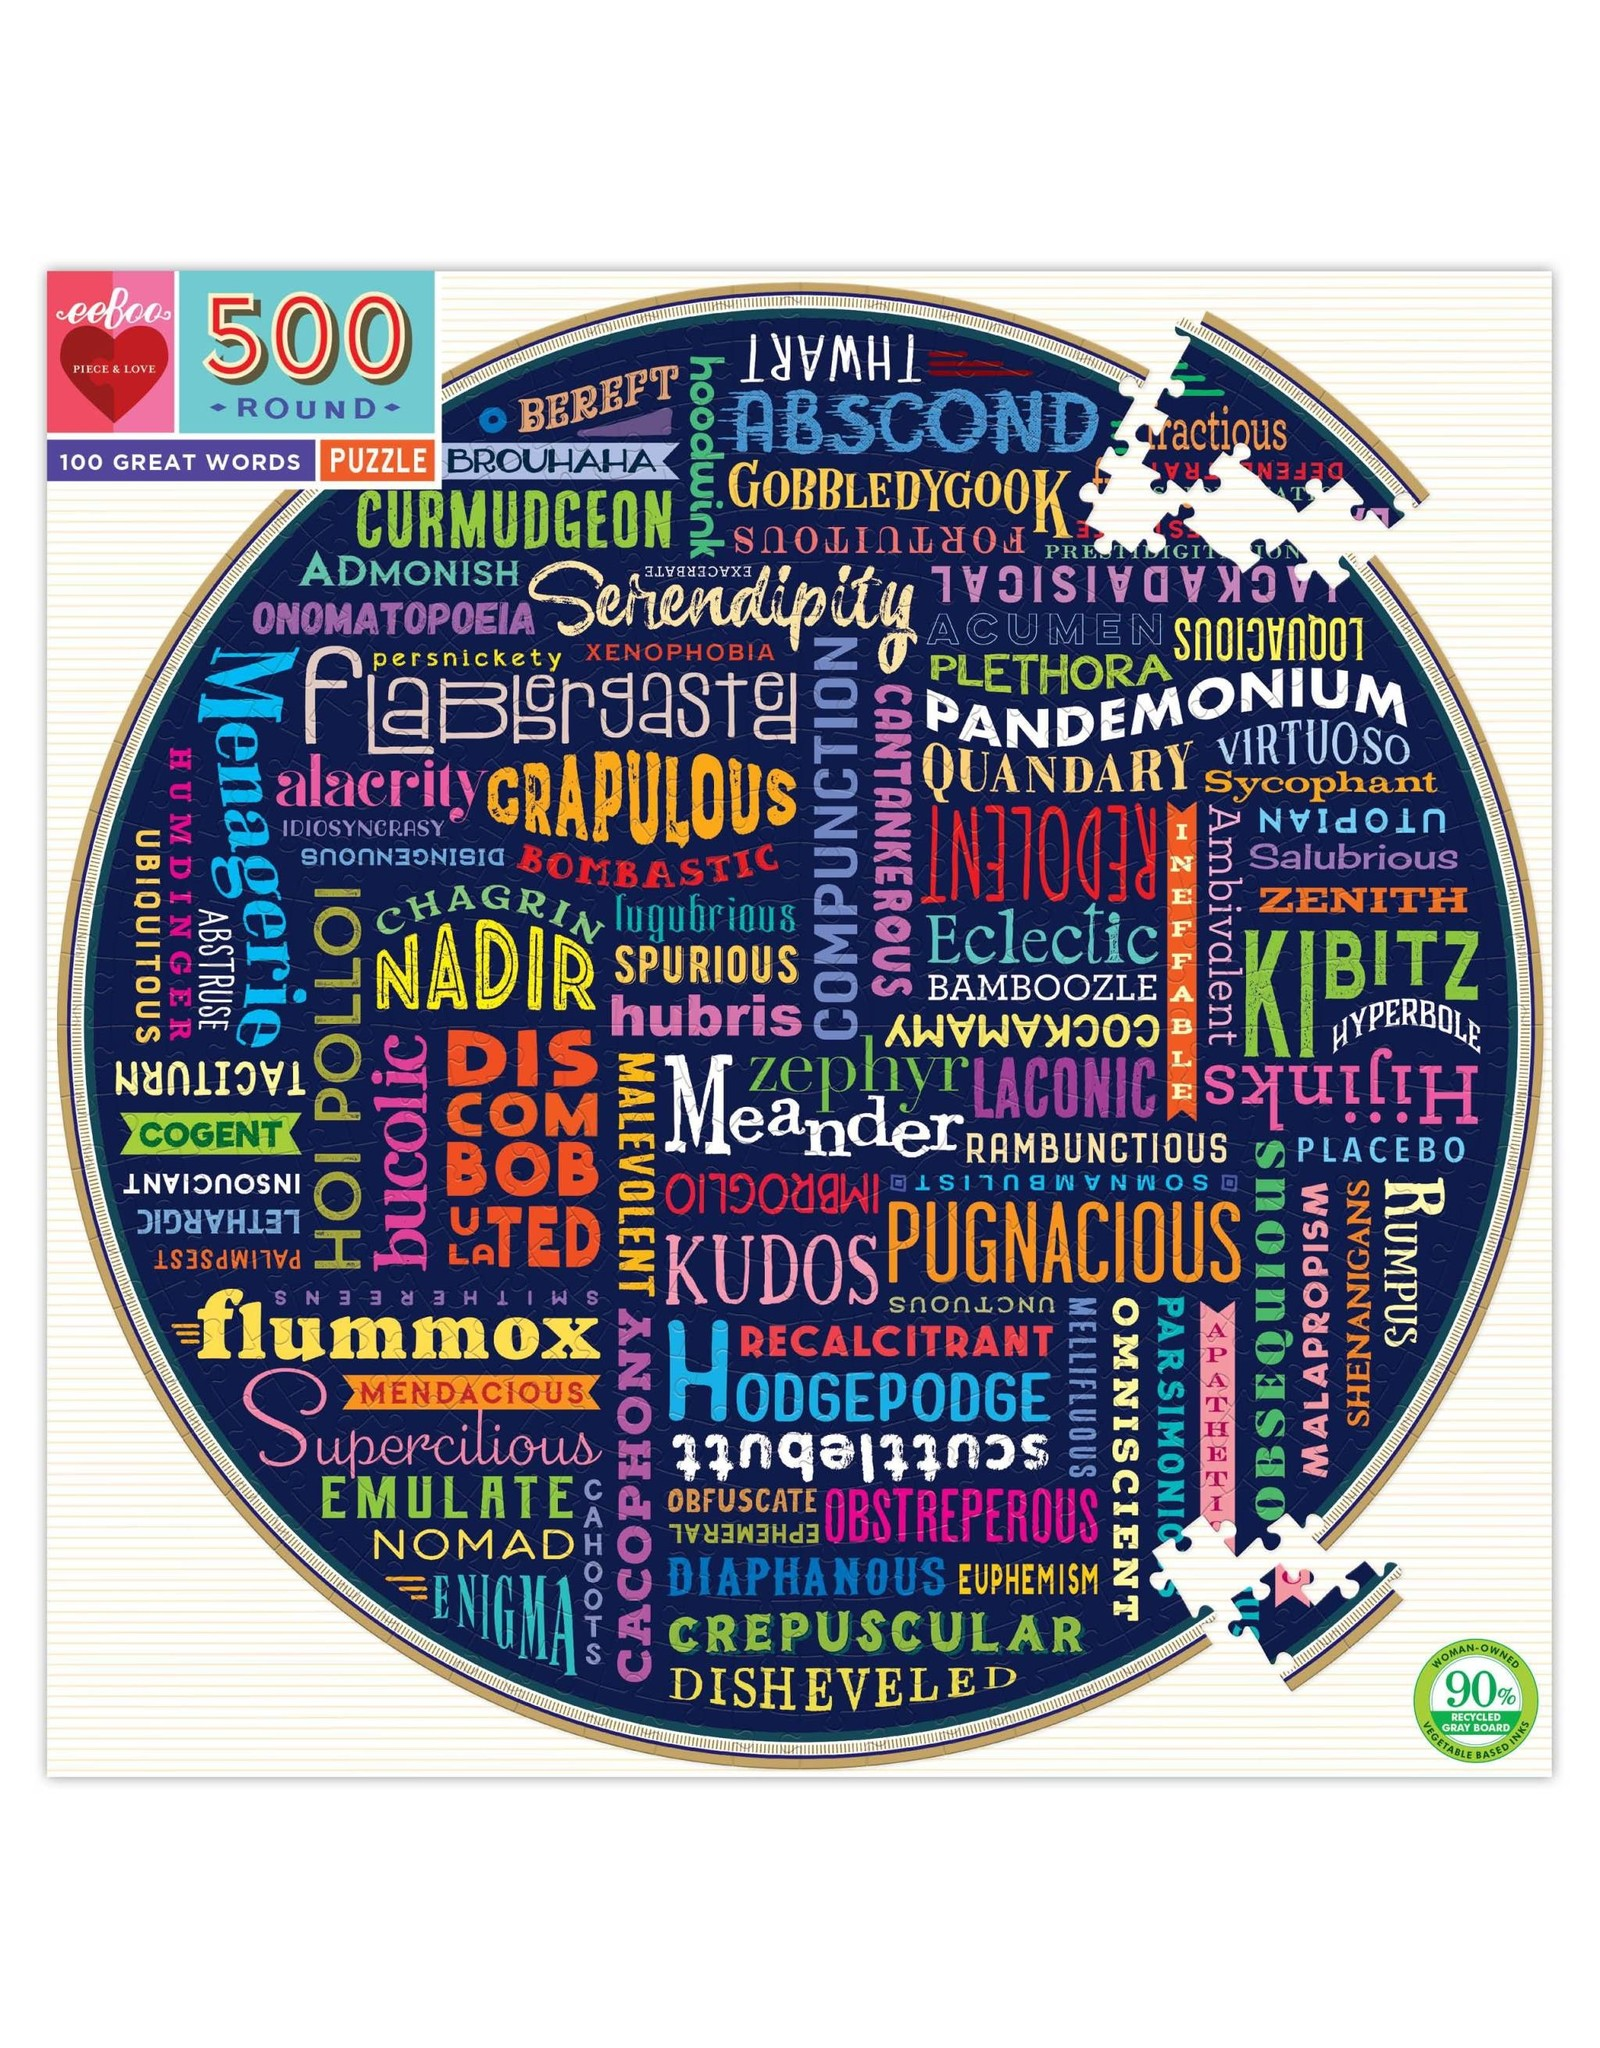 Eeboo 500 pcs. 100 Great Words Round Puzzle